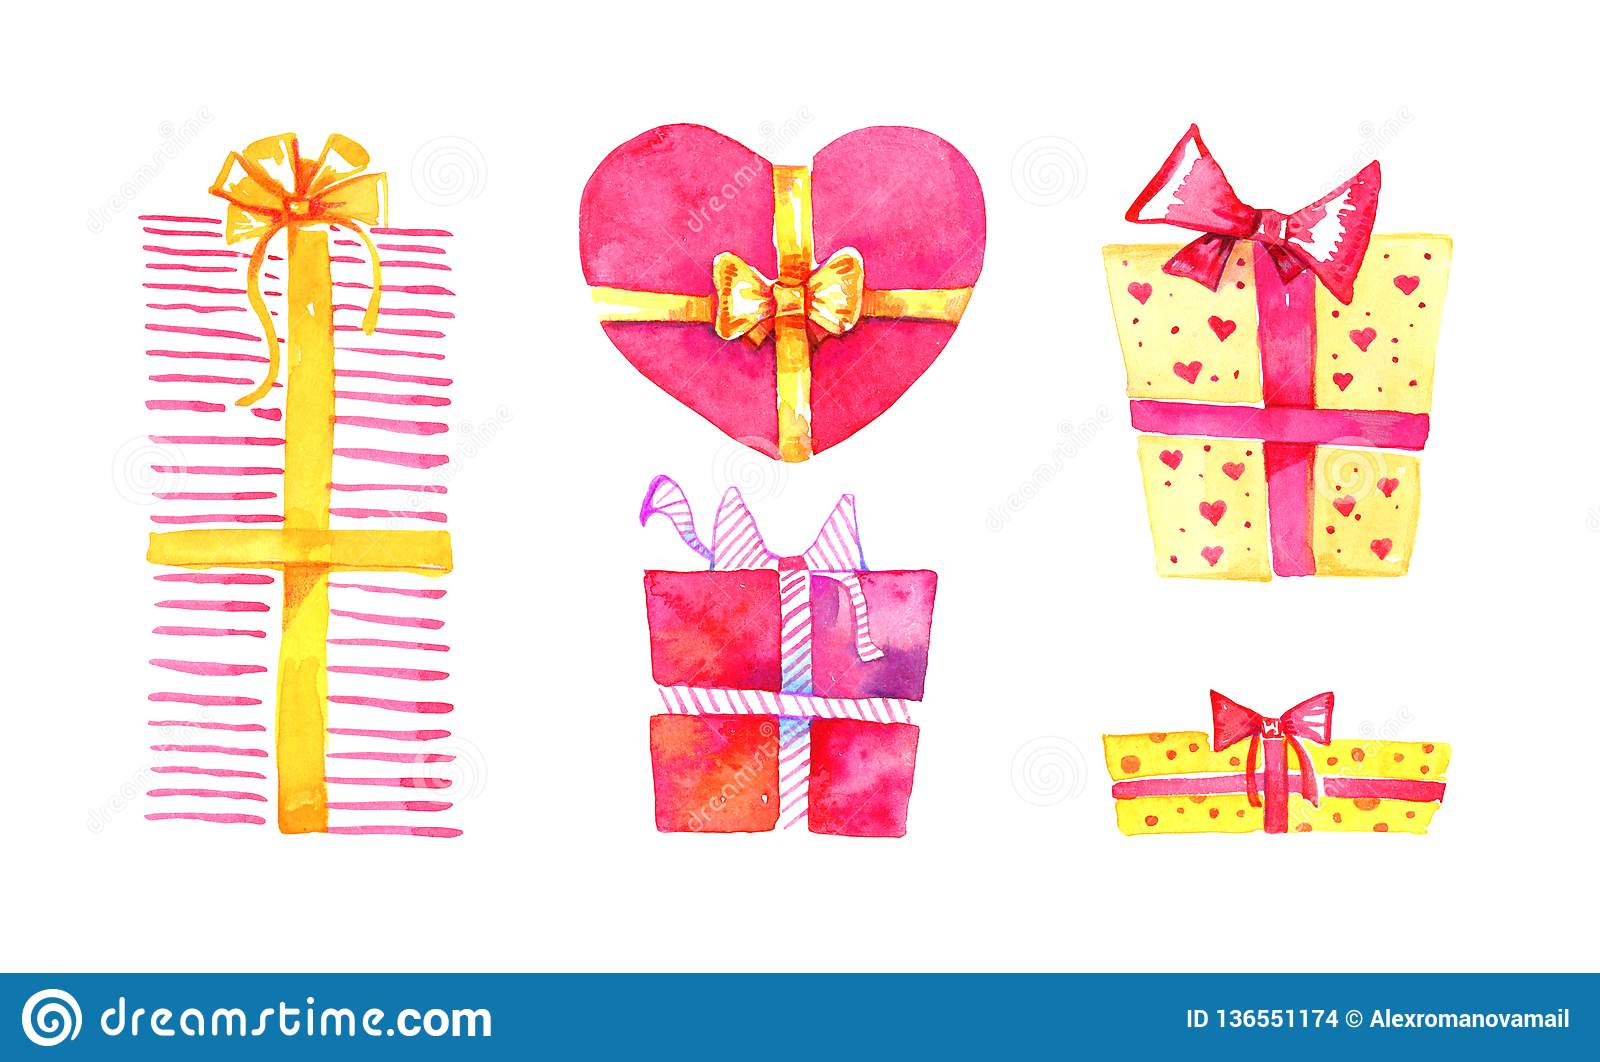 Set of gift boxes. Hand drawn watercolor cartoon sketch illustration. Red and yellow boxes square and heart shape